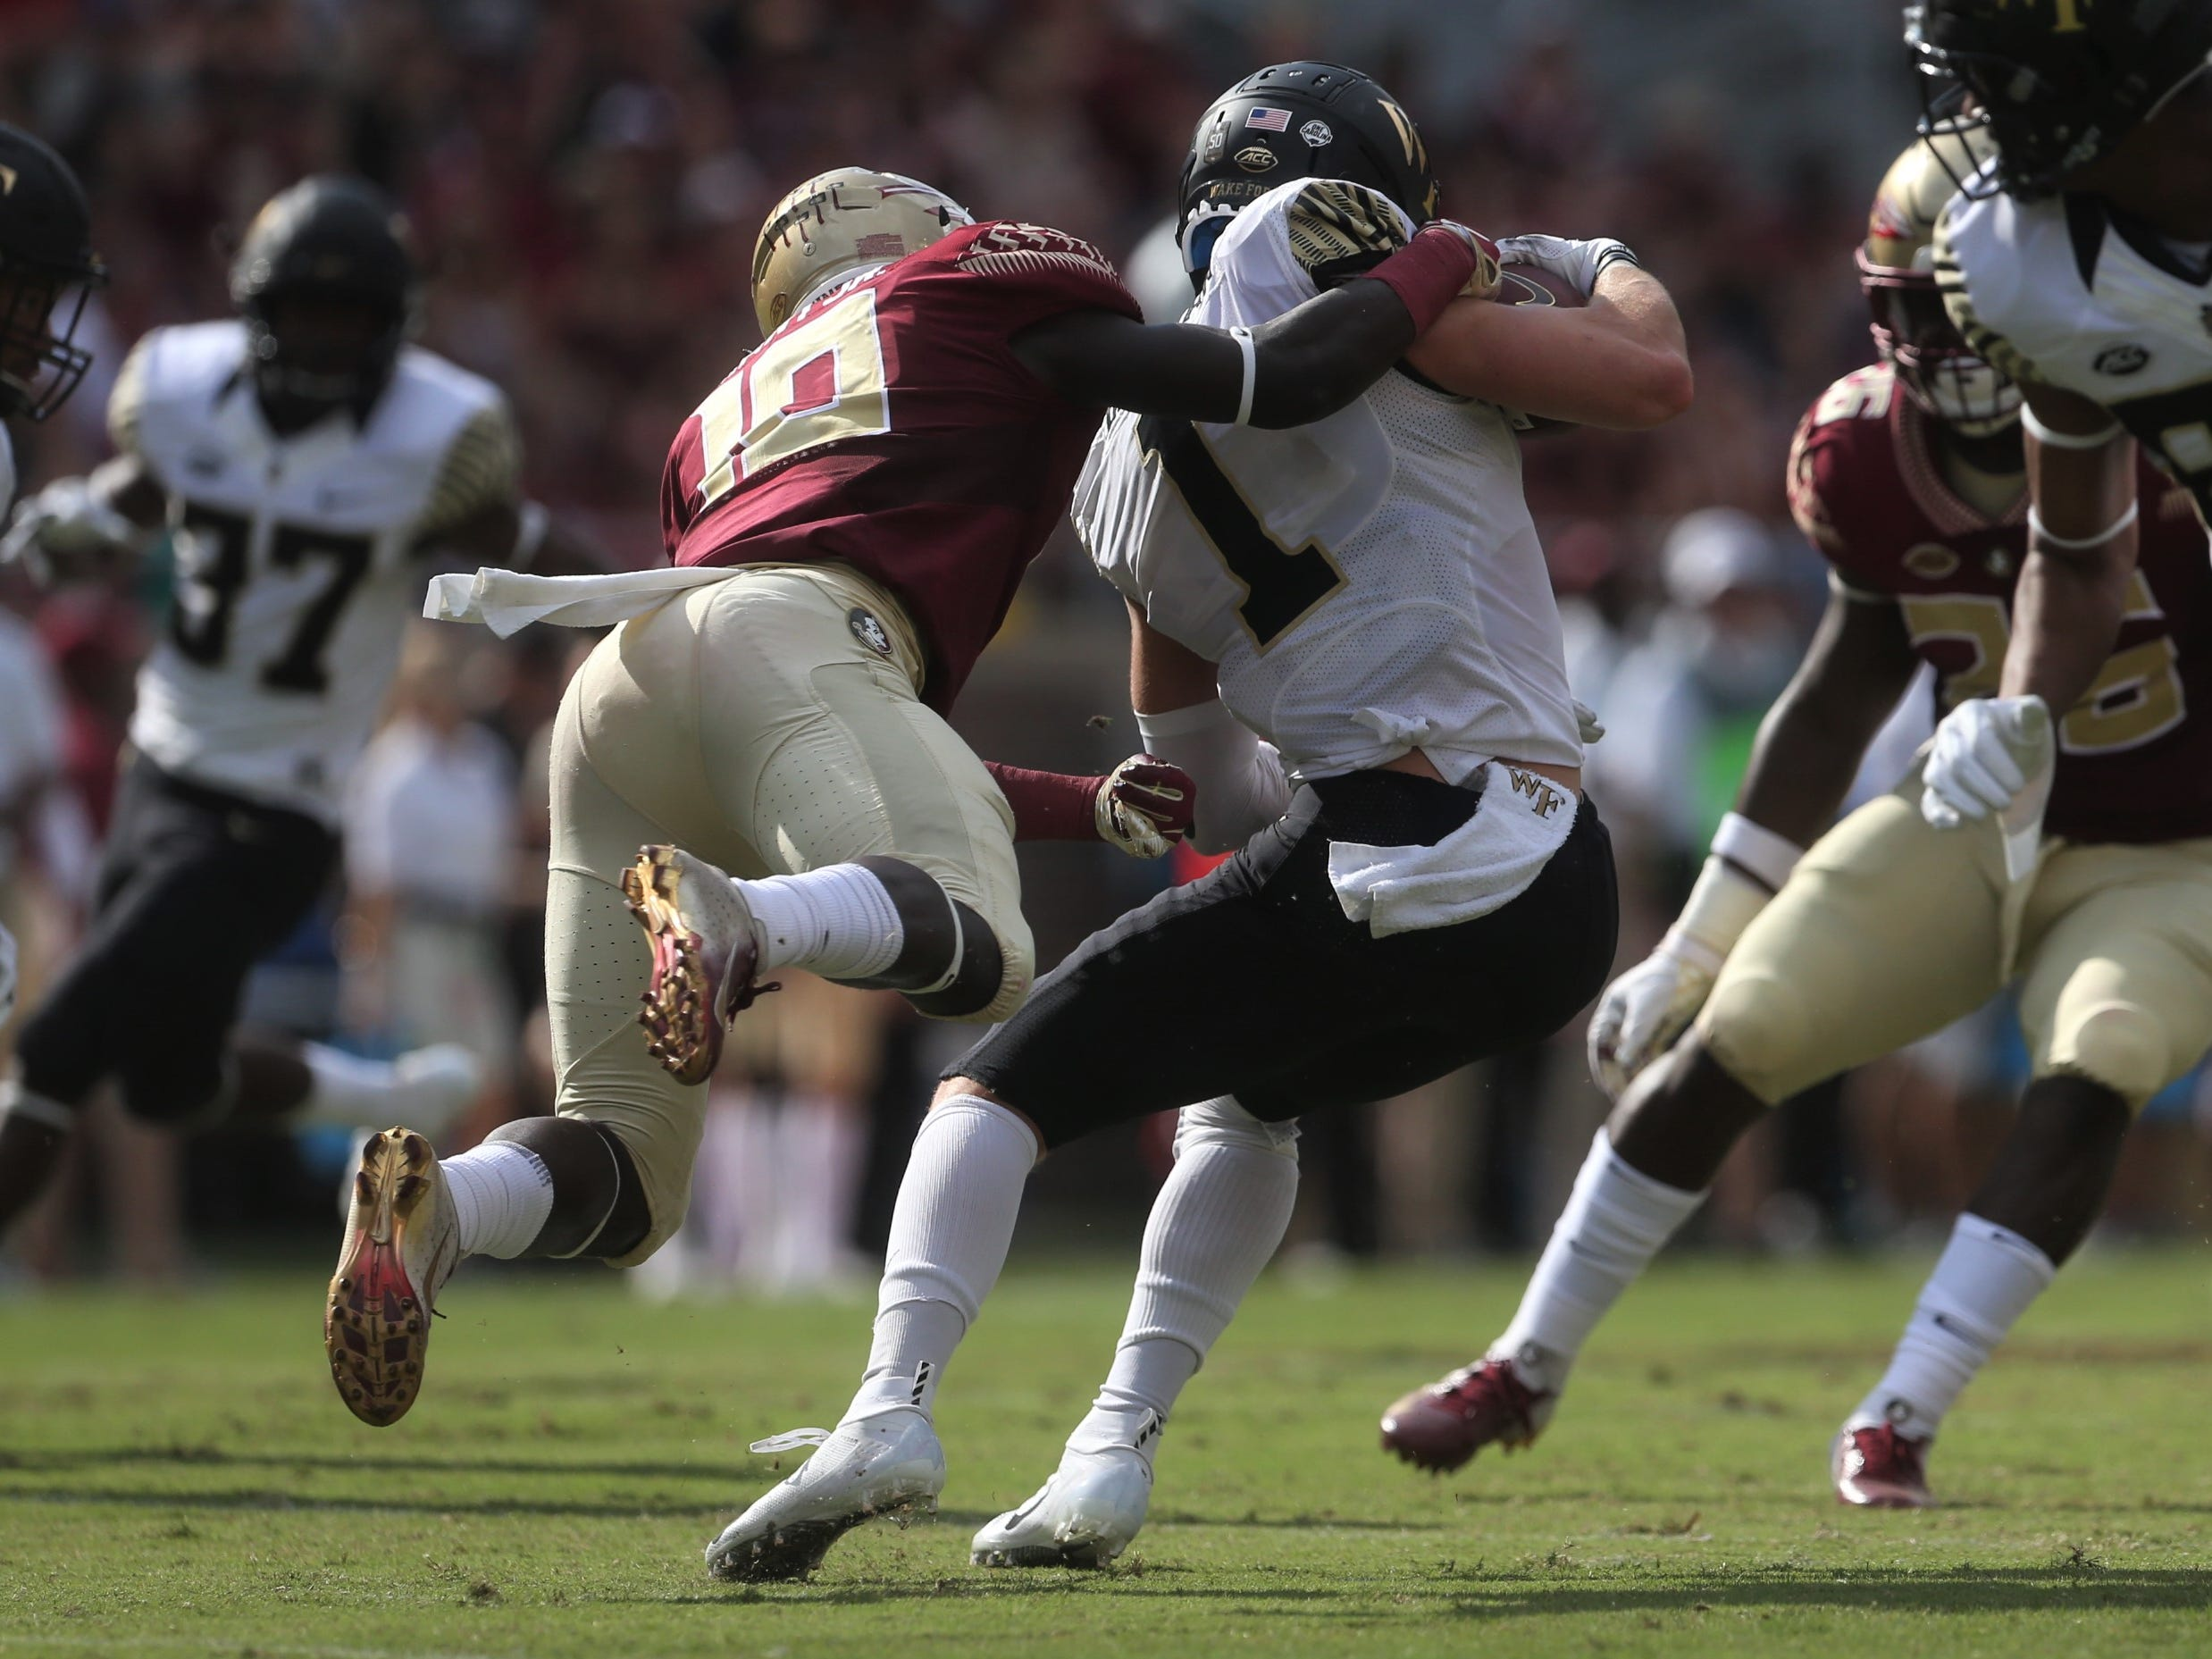 Florida State's Anthony Grant tries to bring down Wake Forest's Alex Bachman on a punt return during a game at Doak Campbell Stadium on Saturday, Oct. 20, 2018.